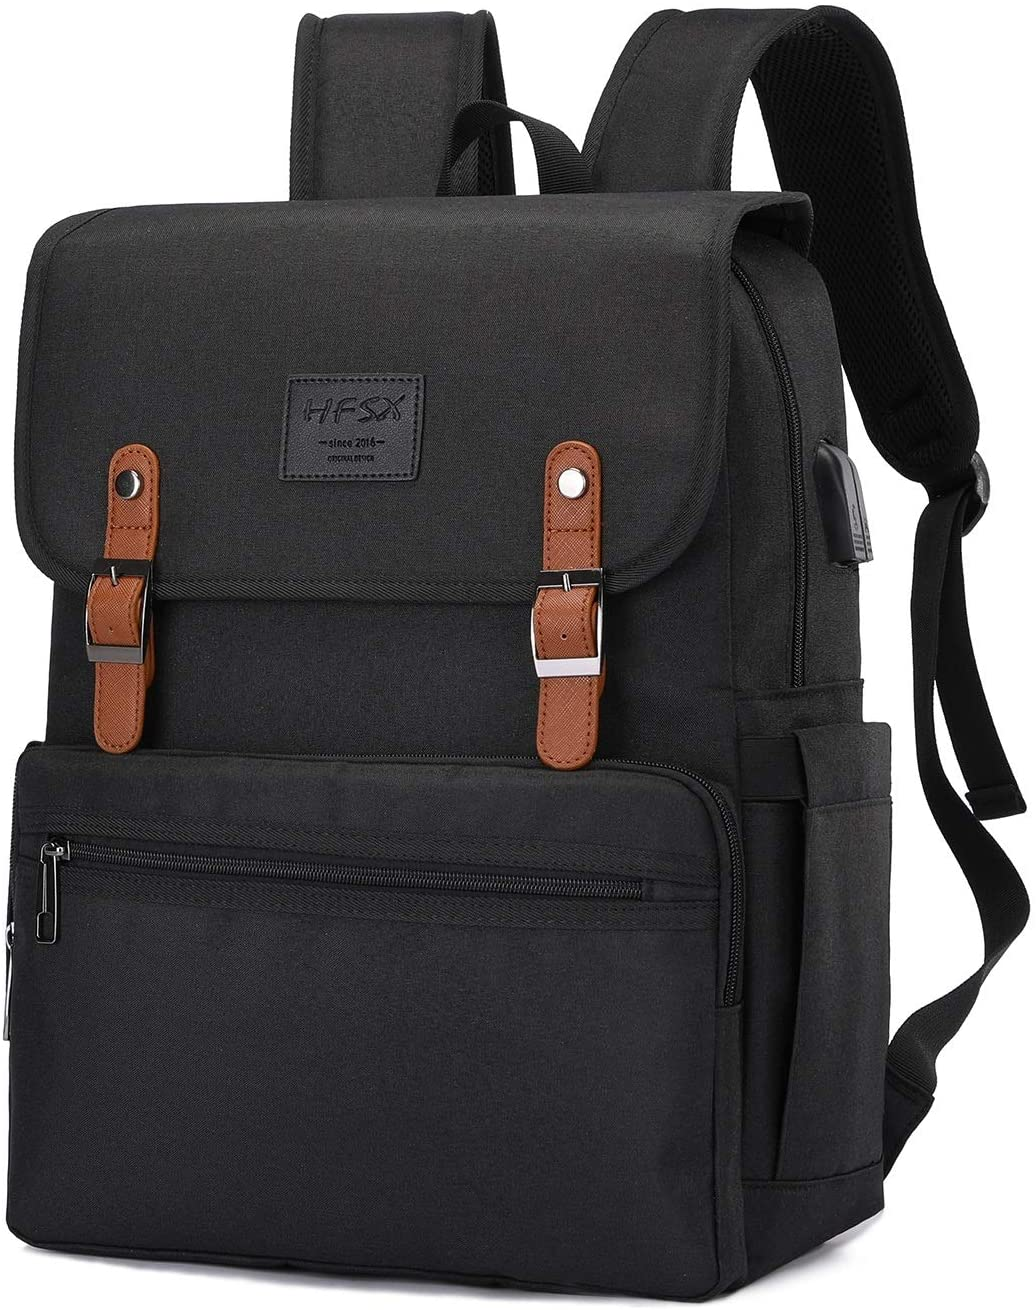 Anti Theft Laptop Backpack Men Women Vintage Backpack Bookbag School College Backpacks Stylish Water Resistant Backpack with USB Port Fashion Black Fits 15.6 Inch Laptop and Notebook